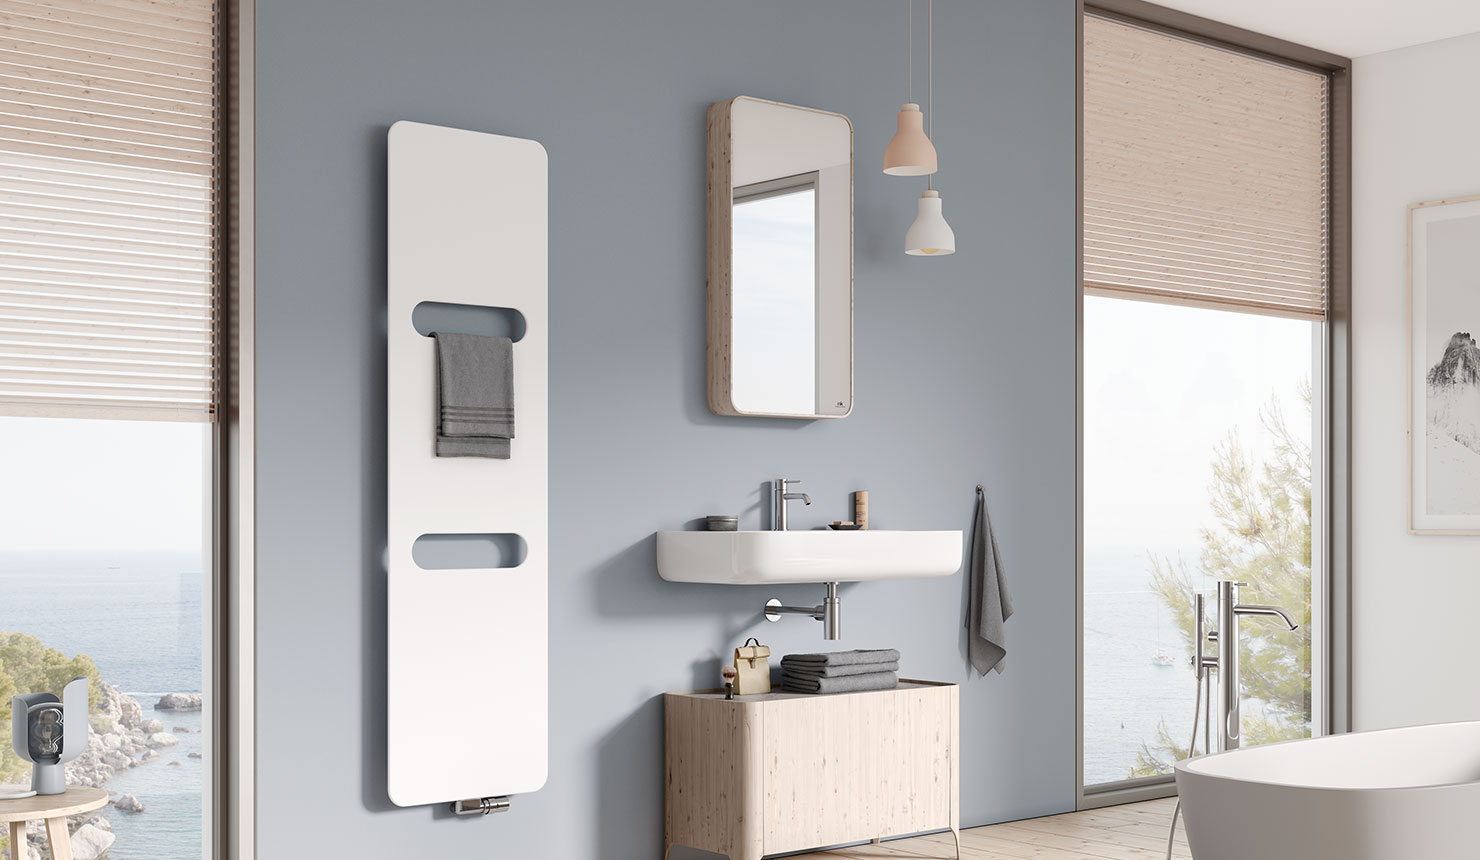 Kermi design radiator Fineo – aluminium radiator Ultra-thin design.